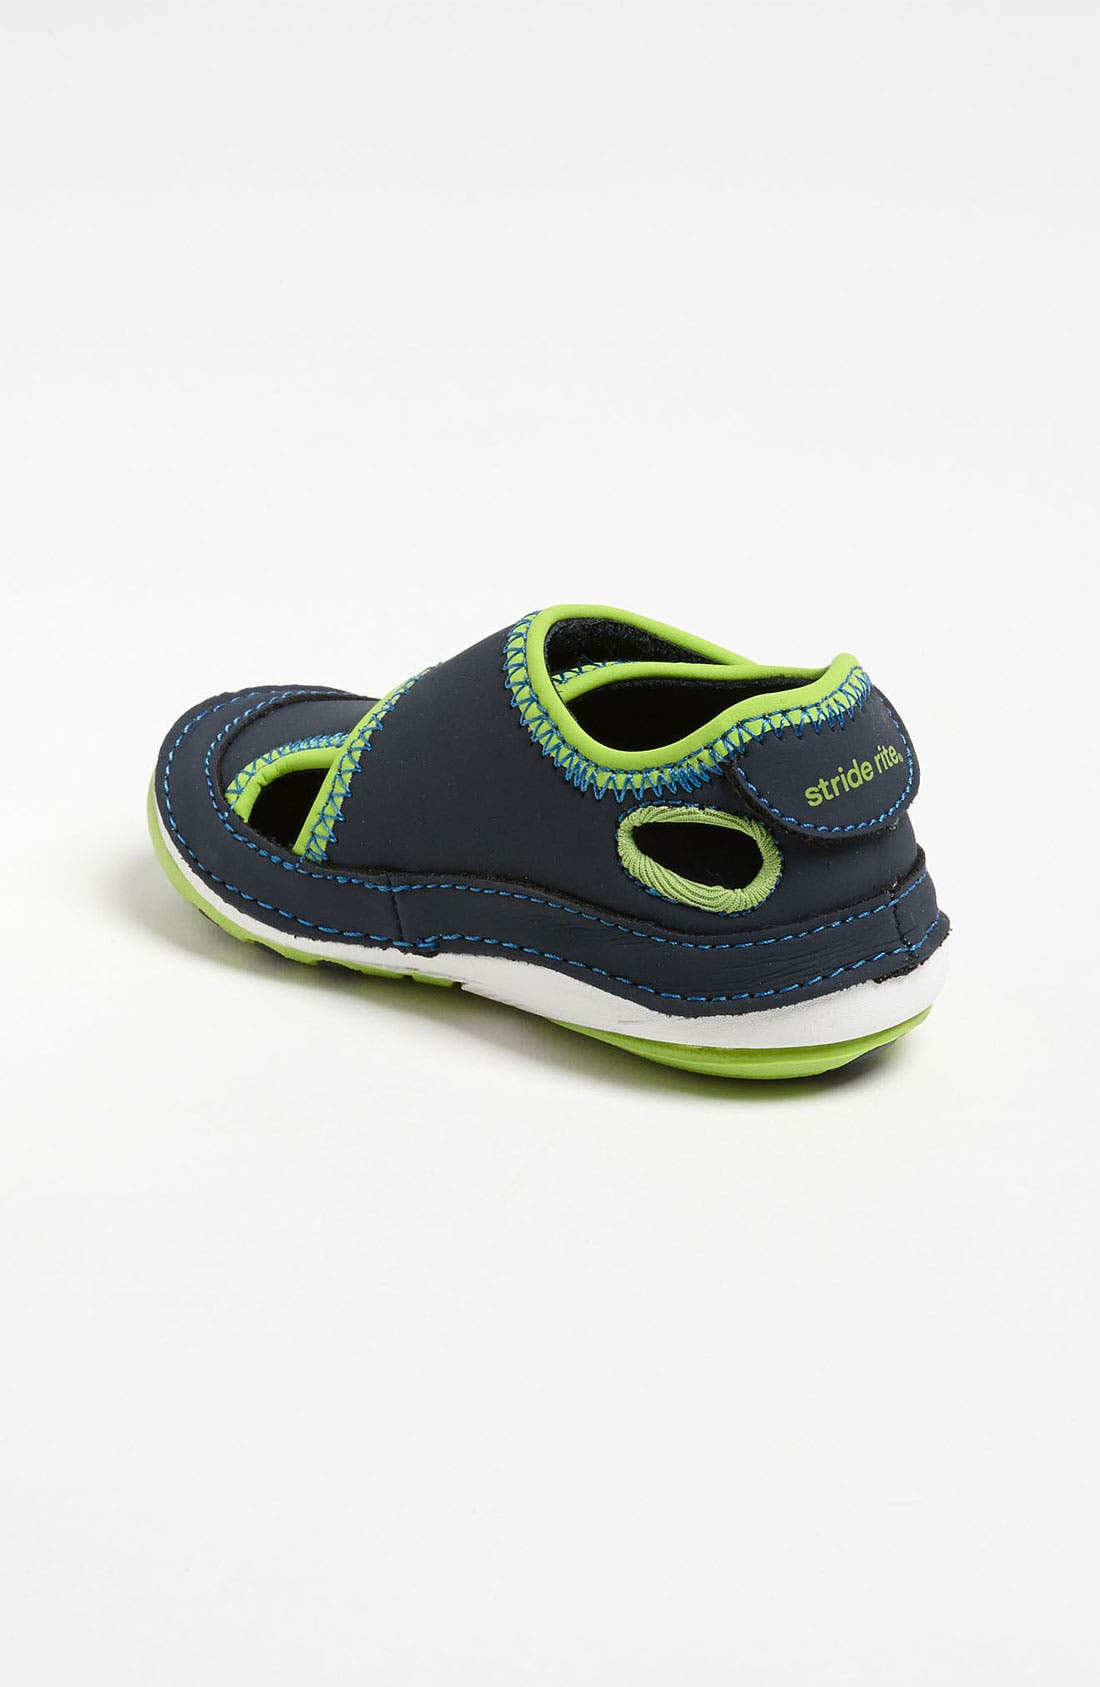 Alternate Image 2  - Stride Rite 'Crash' Sandal (Baby & Walker)